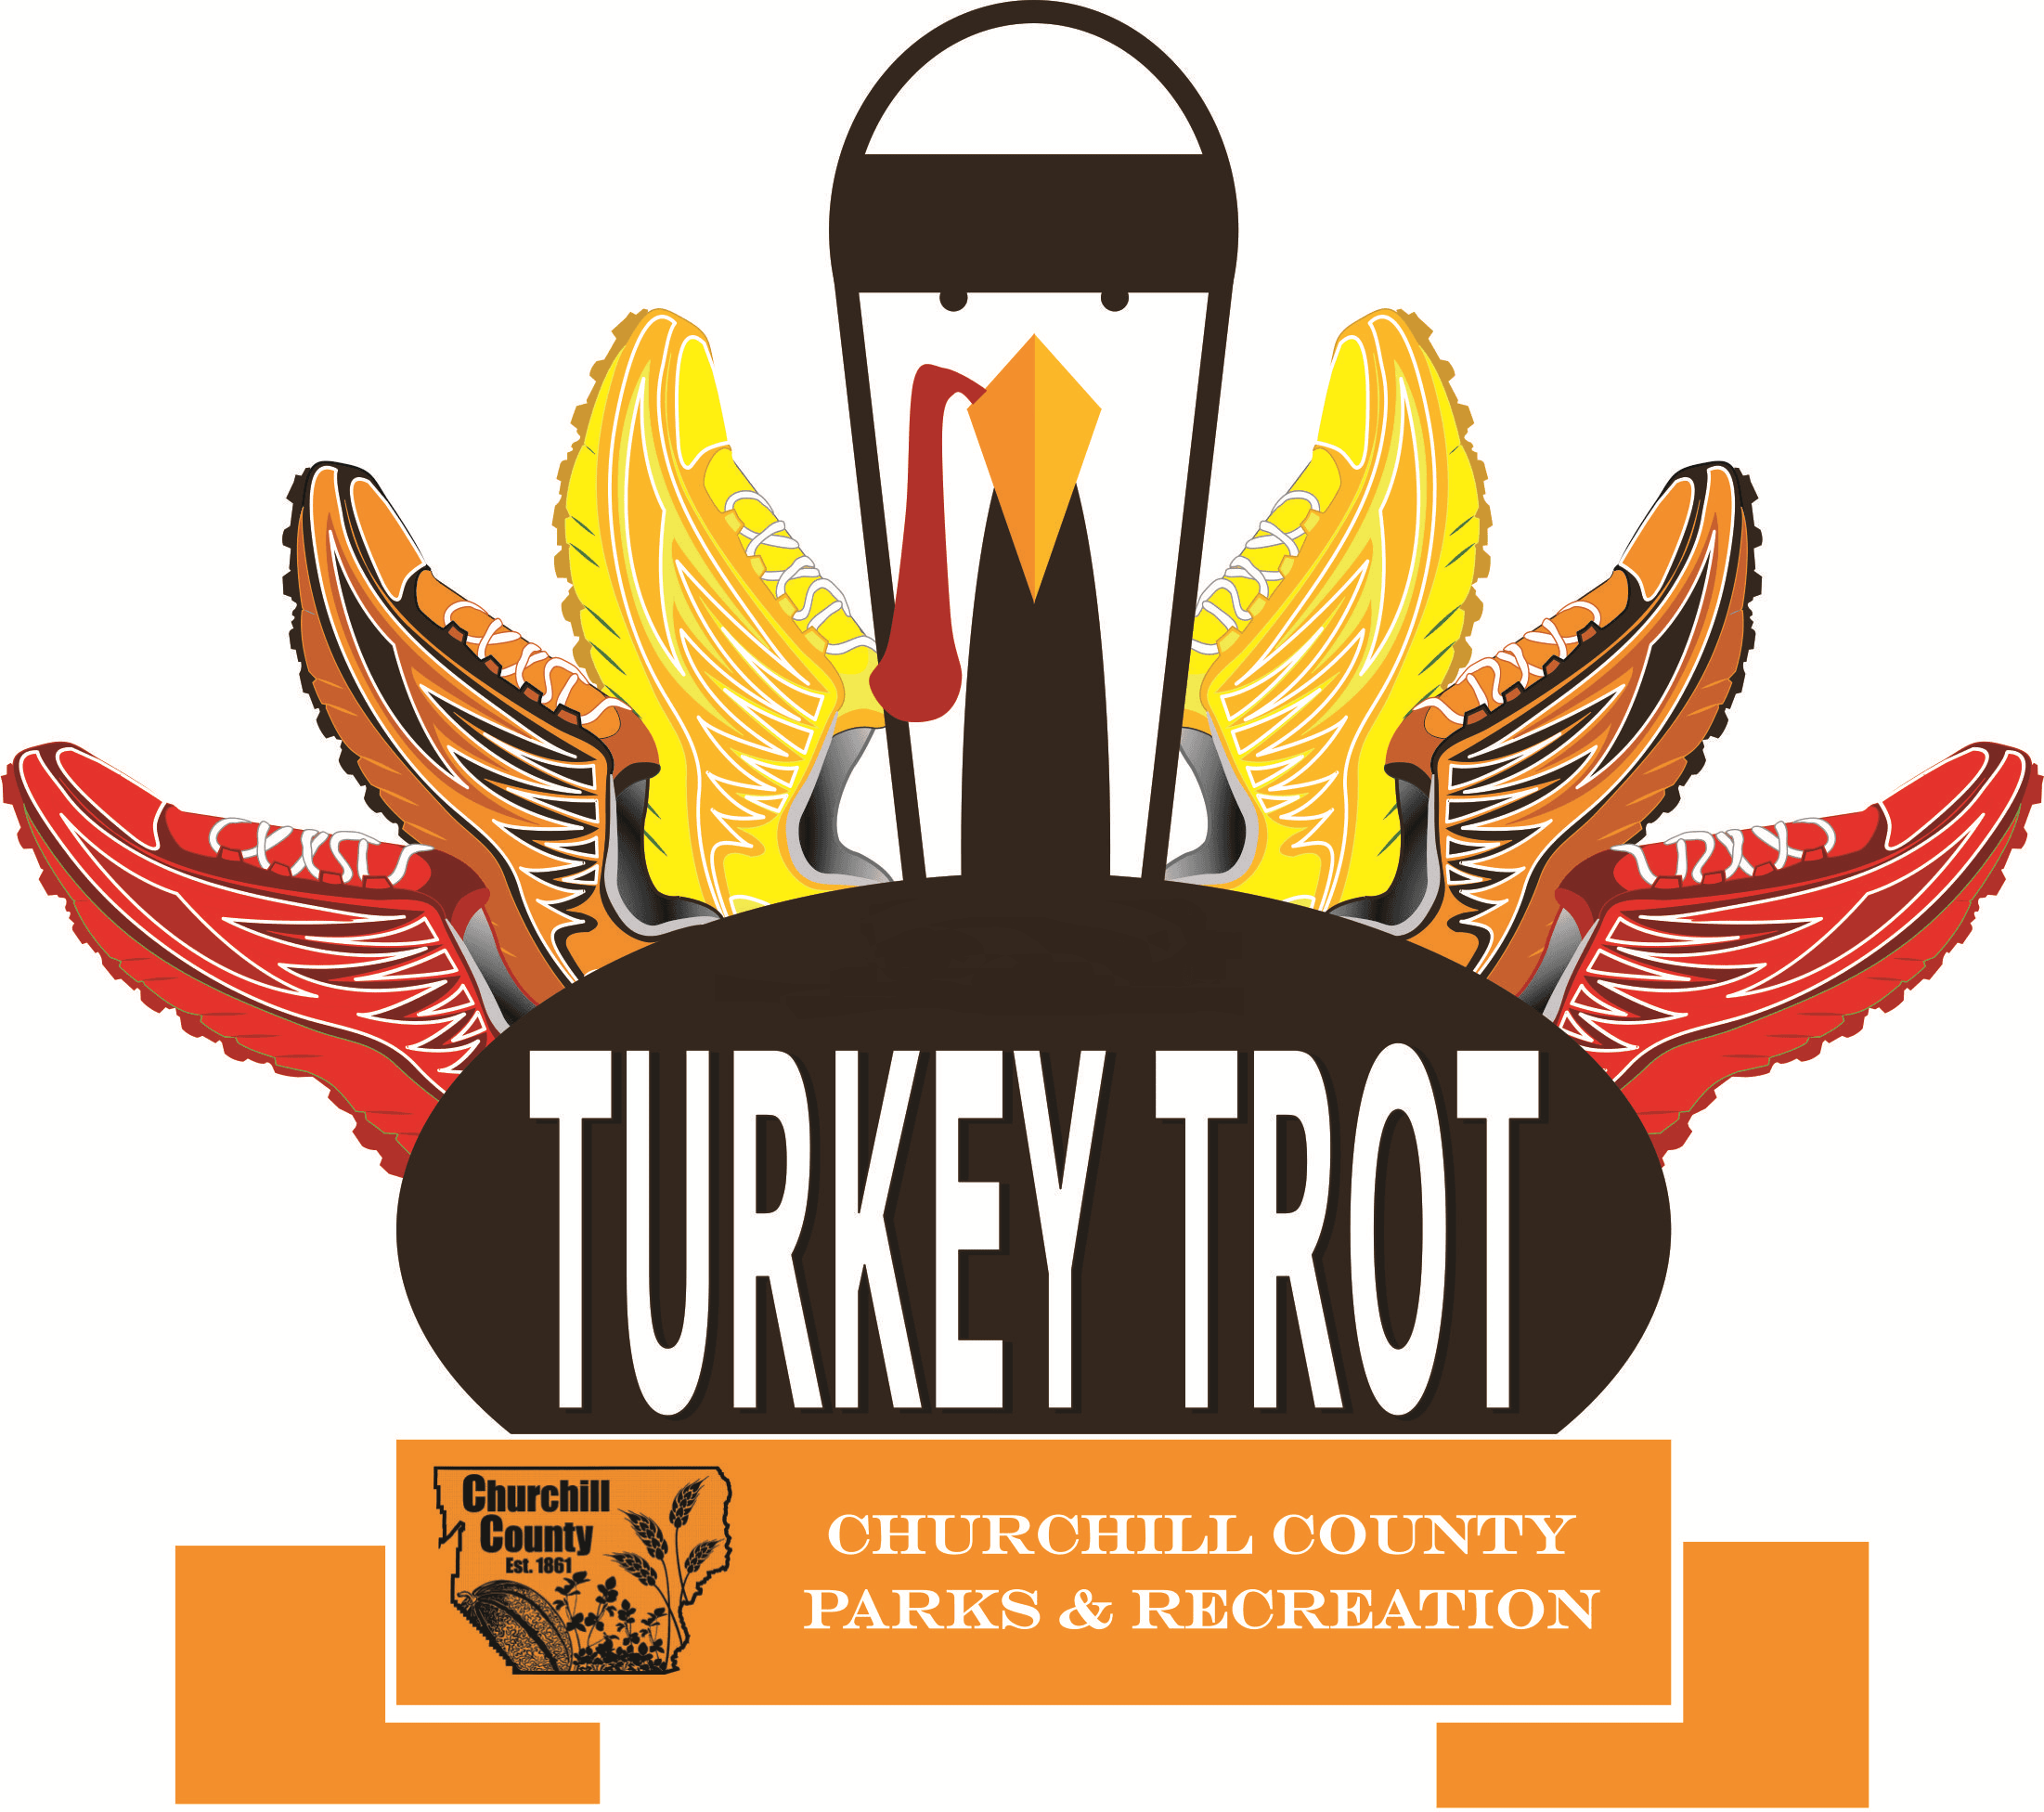 Turkey Trot Logo - An autumn colored turkey with running shoes for feathers behind a banner that say